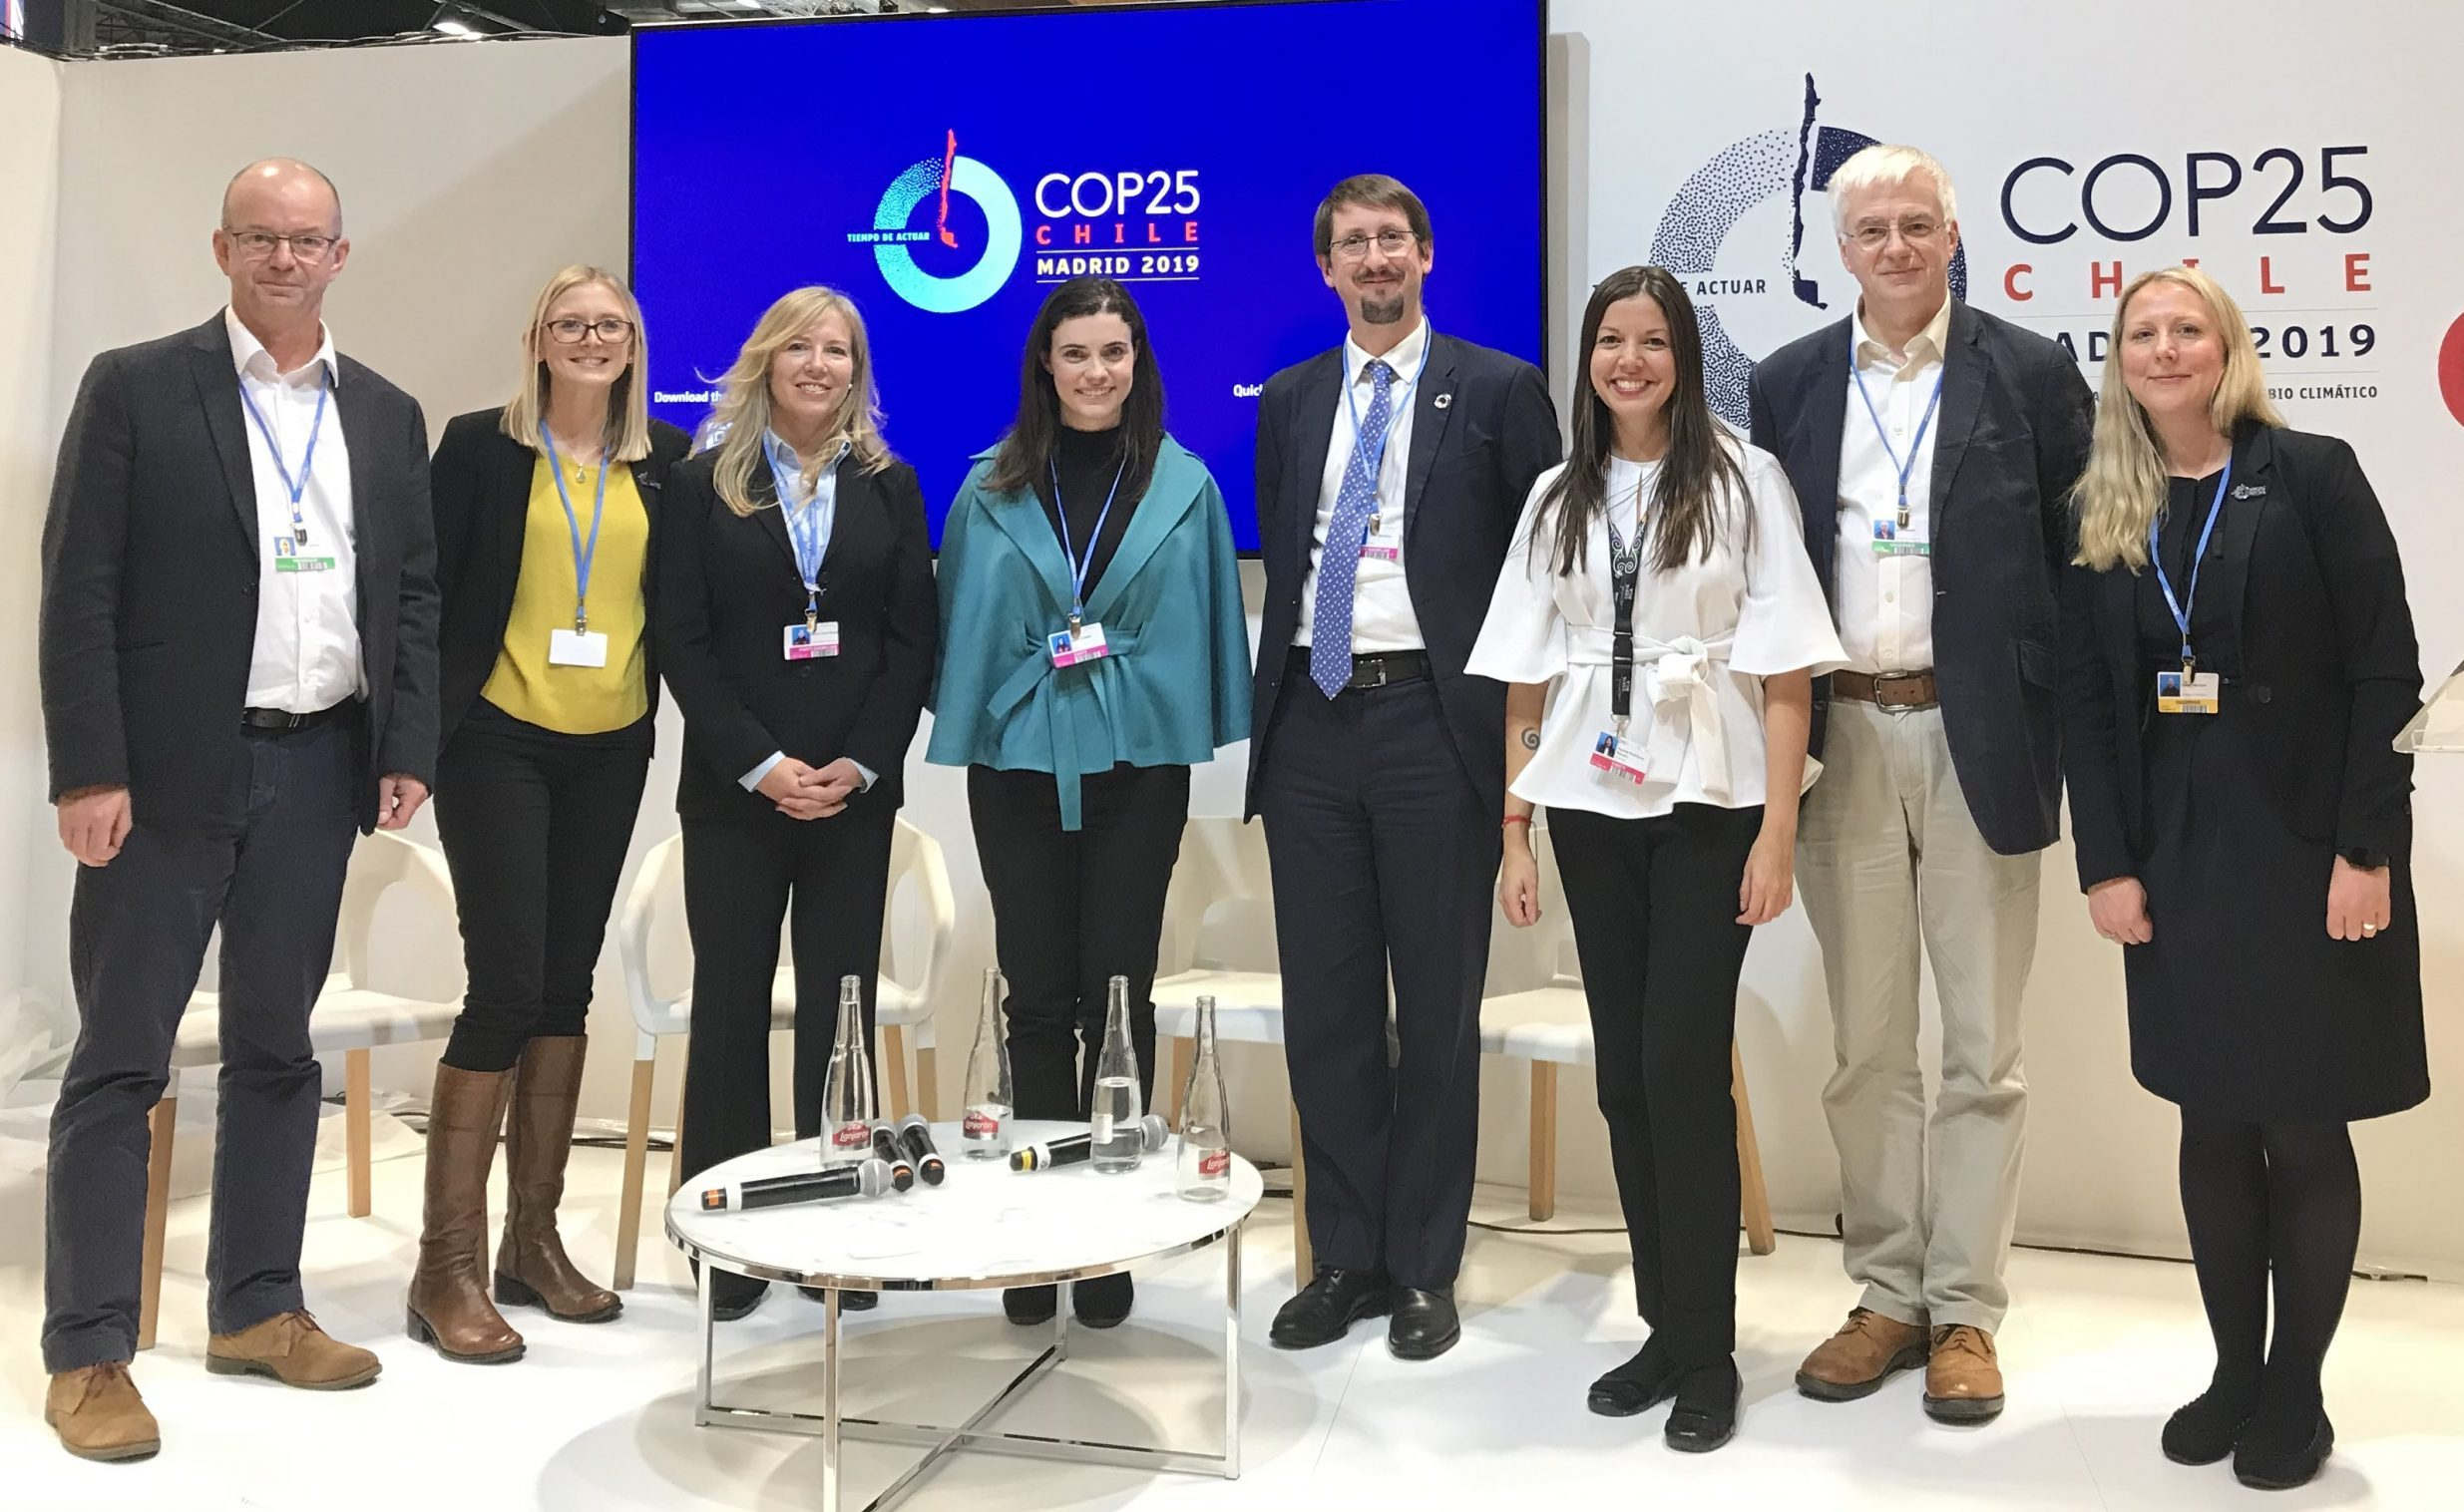 The Partners at COP25